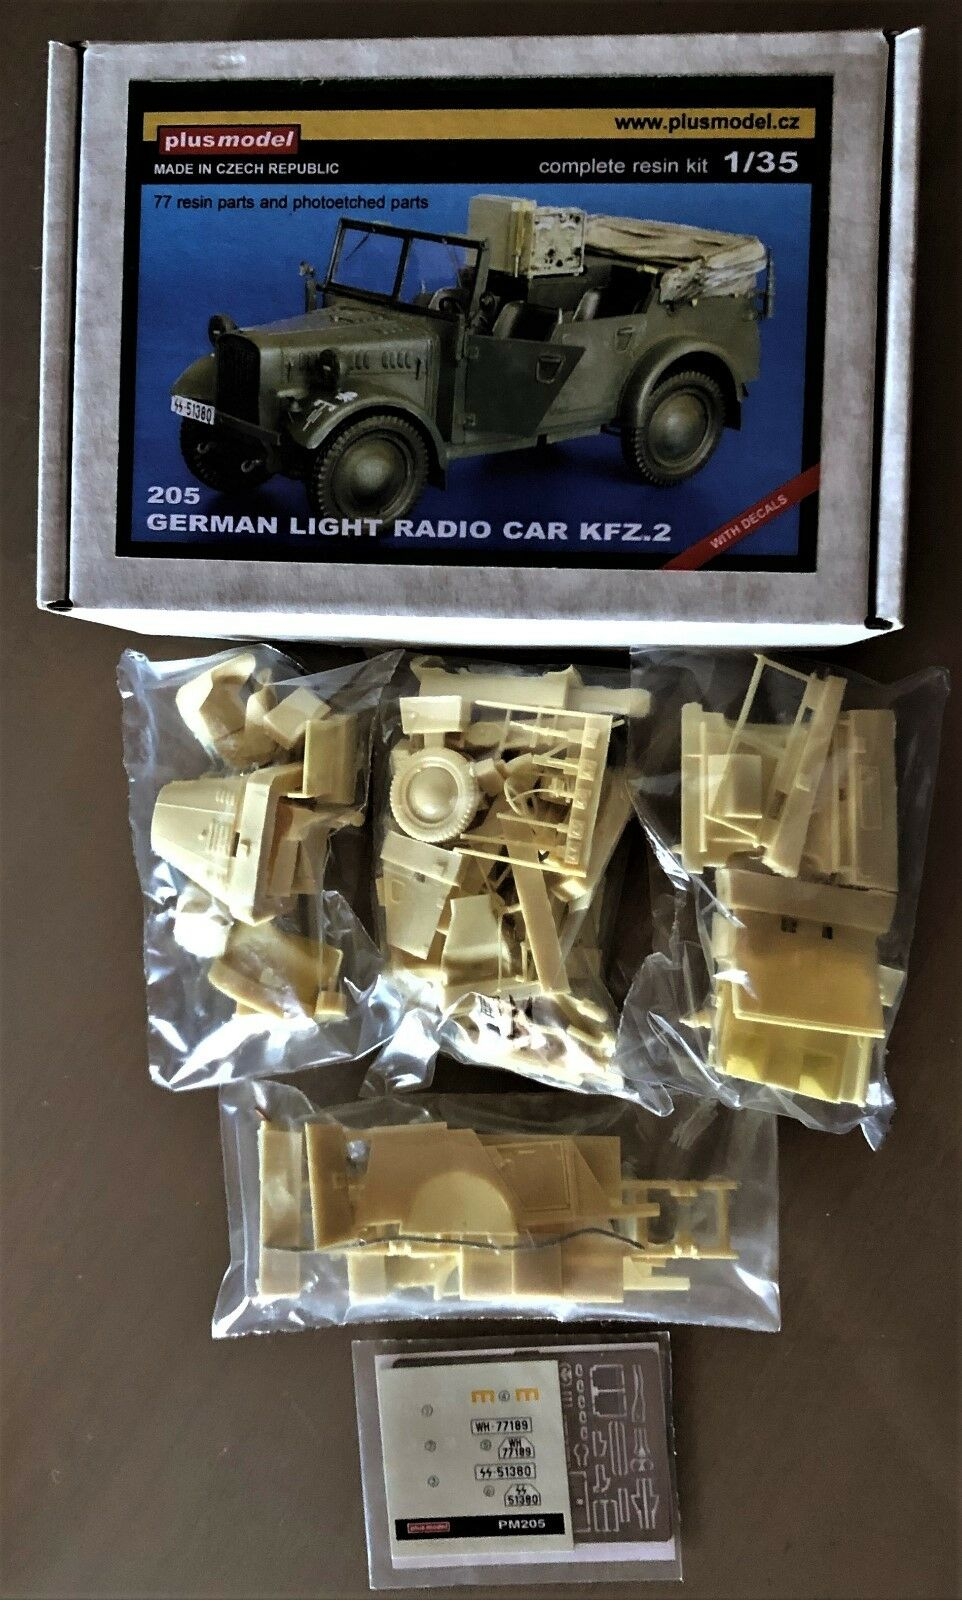 PLUSMODEL PLUS MODEL 205 - GERMAN LIGHT RADIO CAR Kfz.2 - 1 35 RESIN KIT